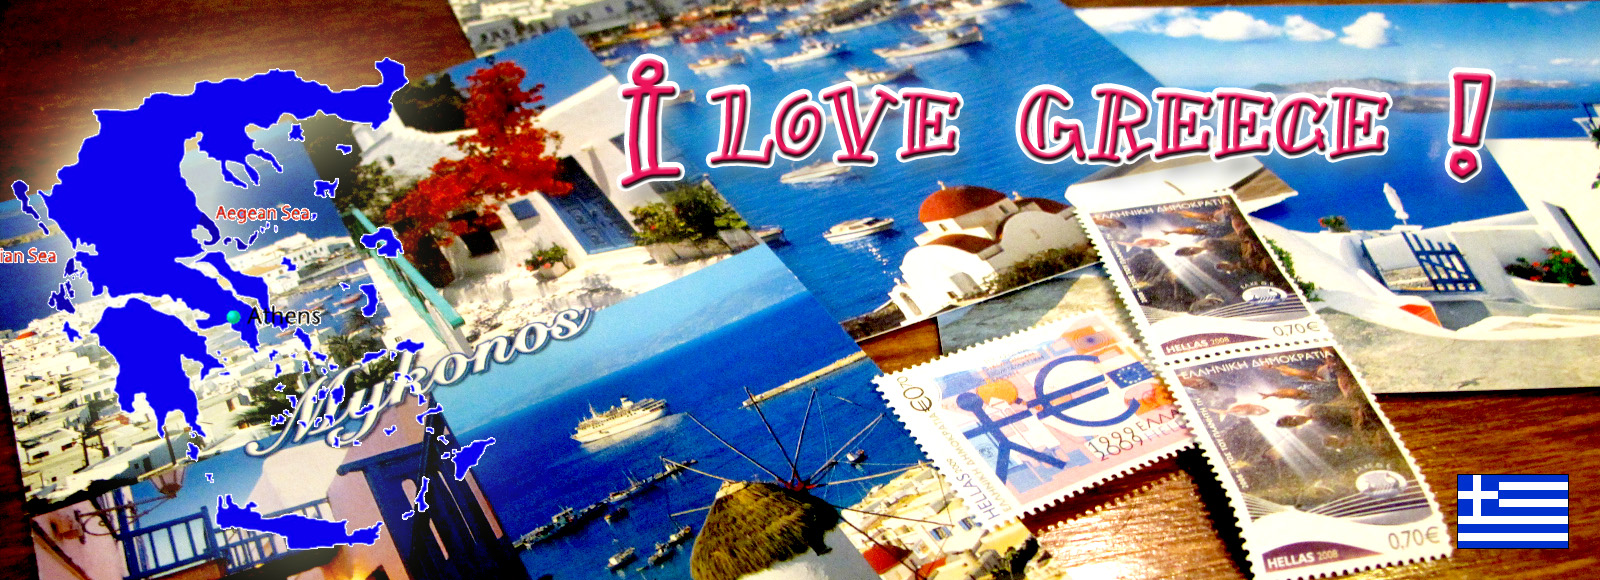 i love greece bana1のコピー